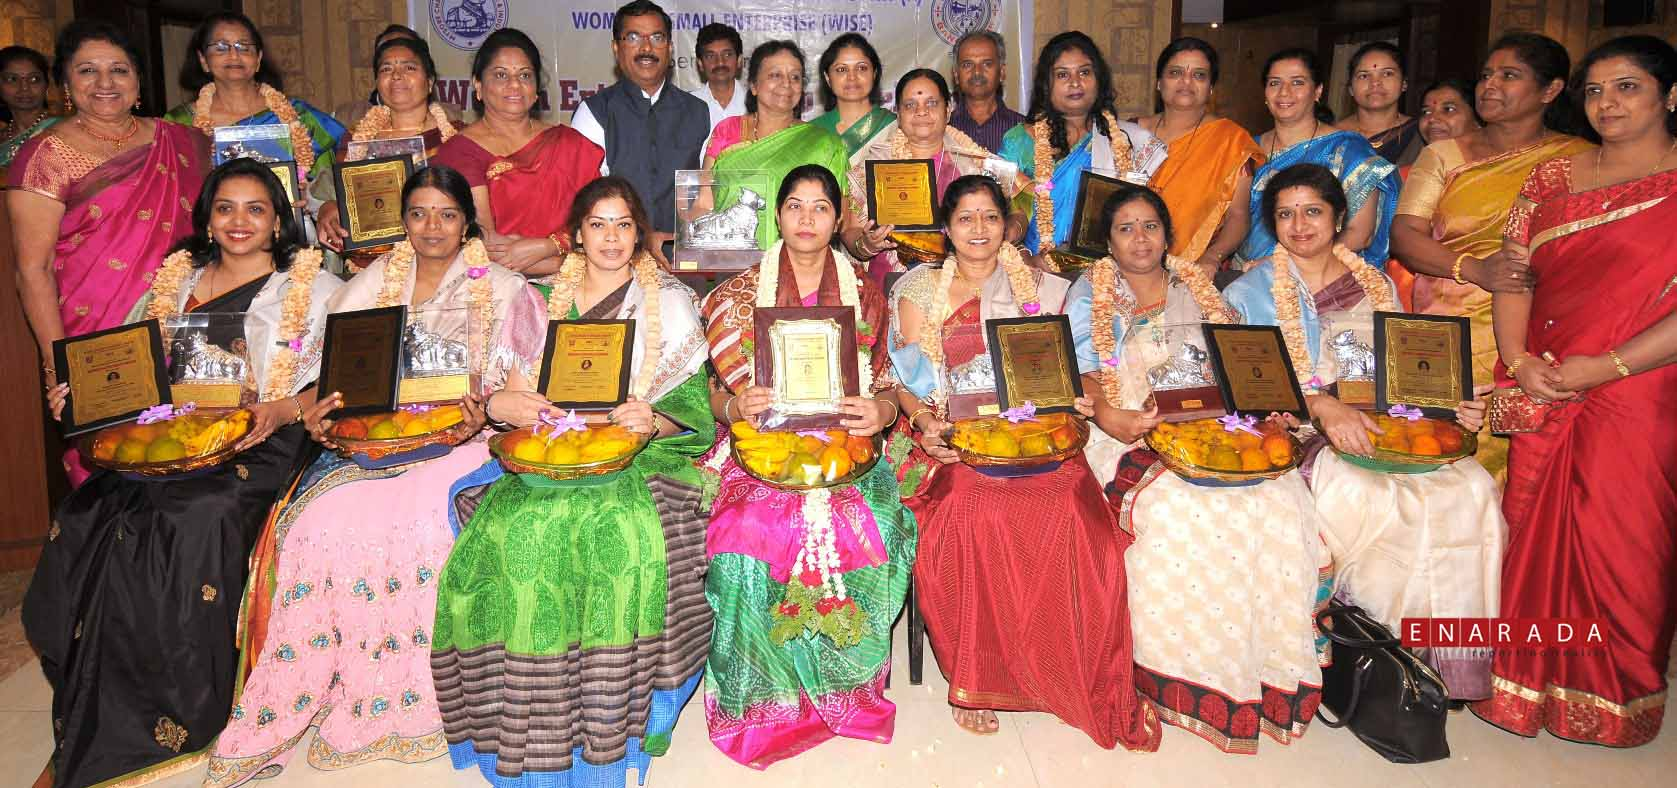 Talented women honoured in Mysuru